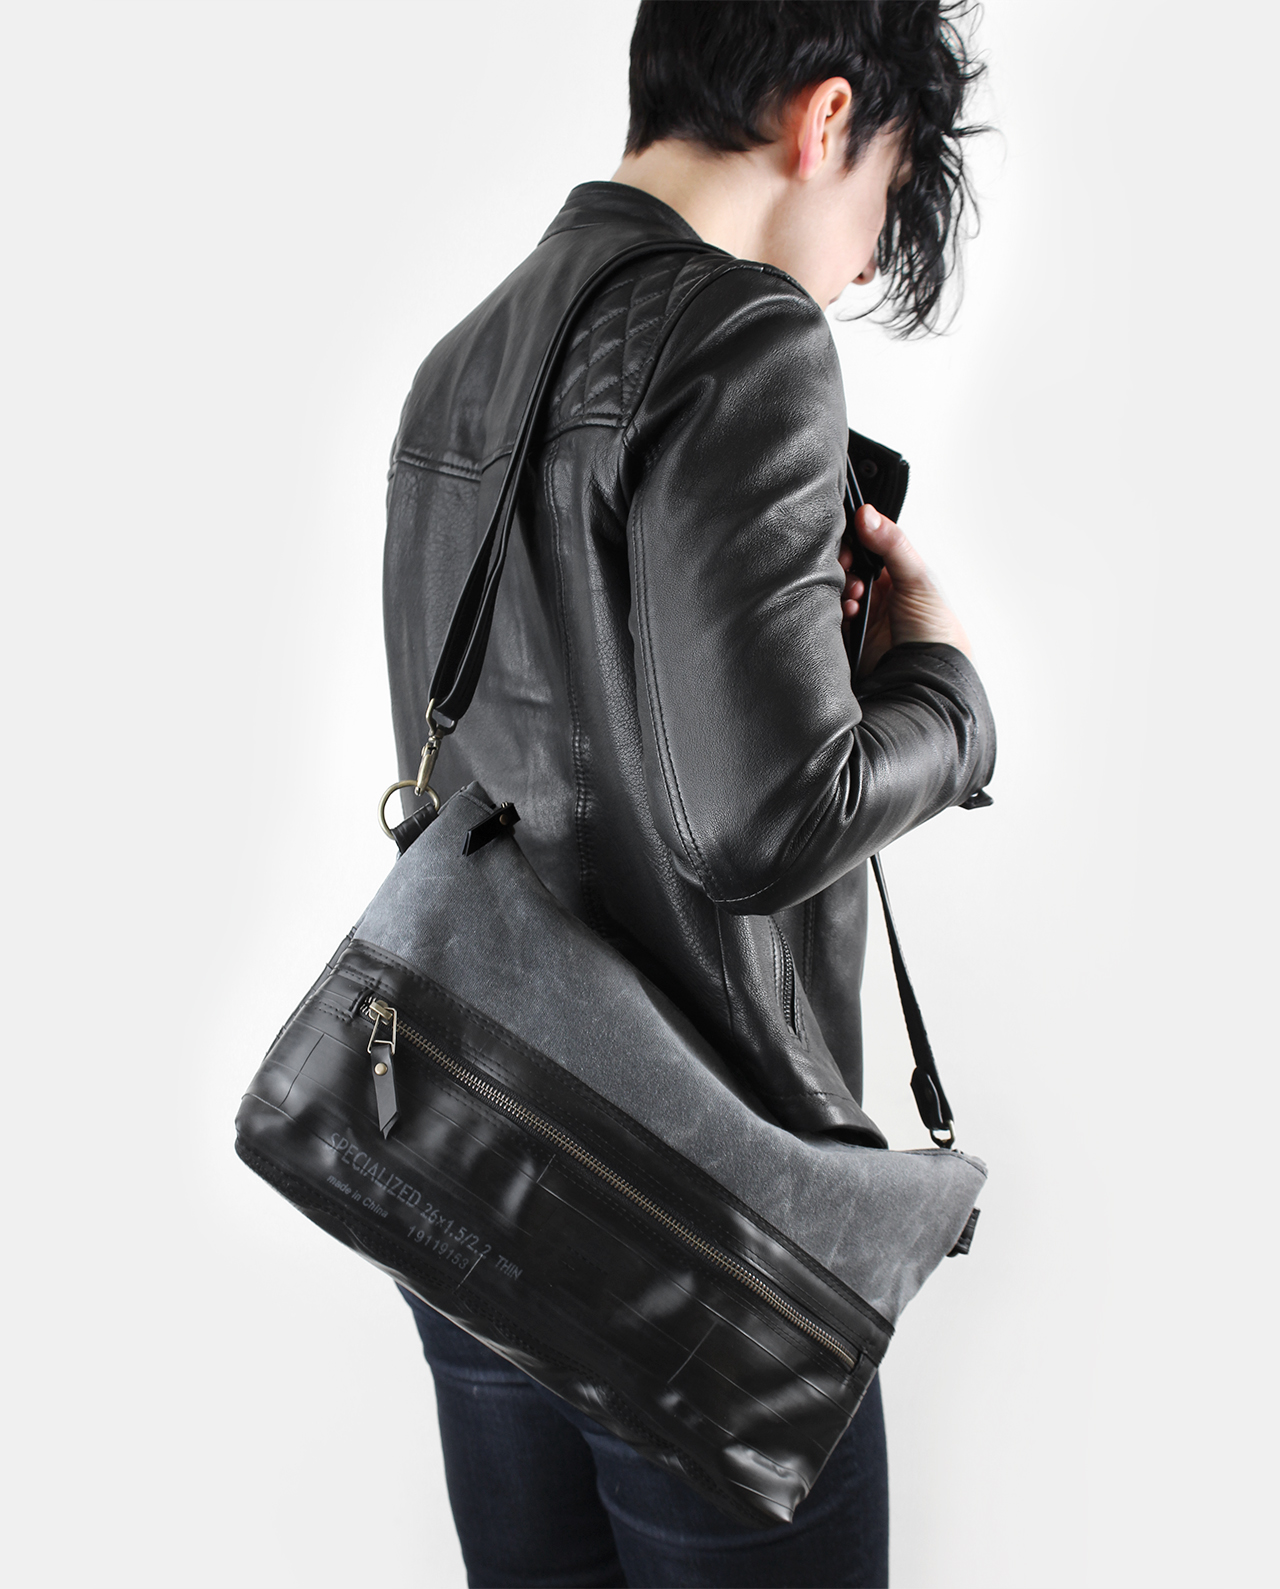 waxed canvas crossbody shoulder bag